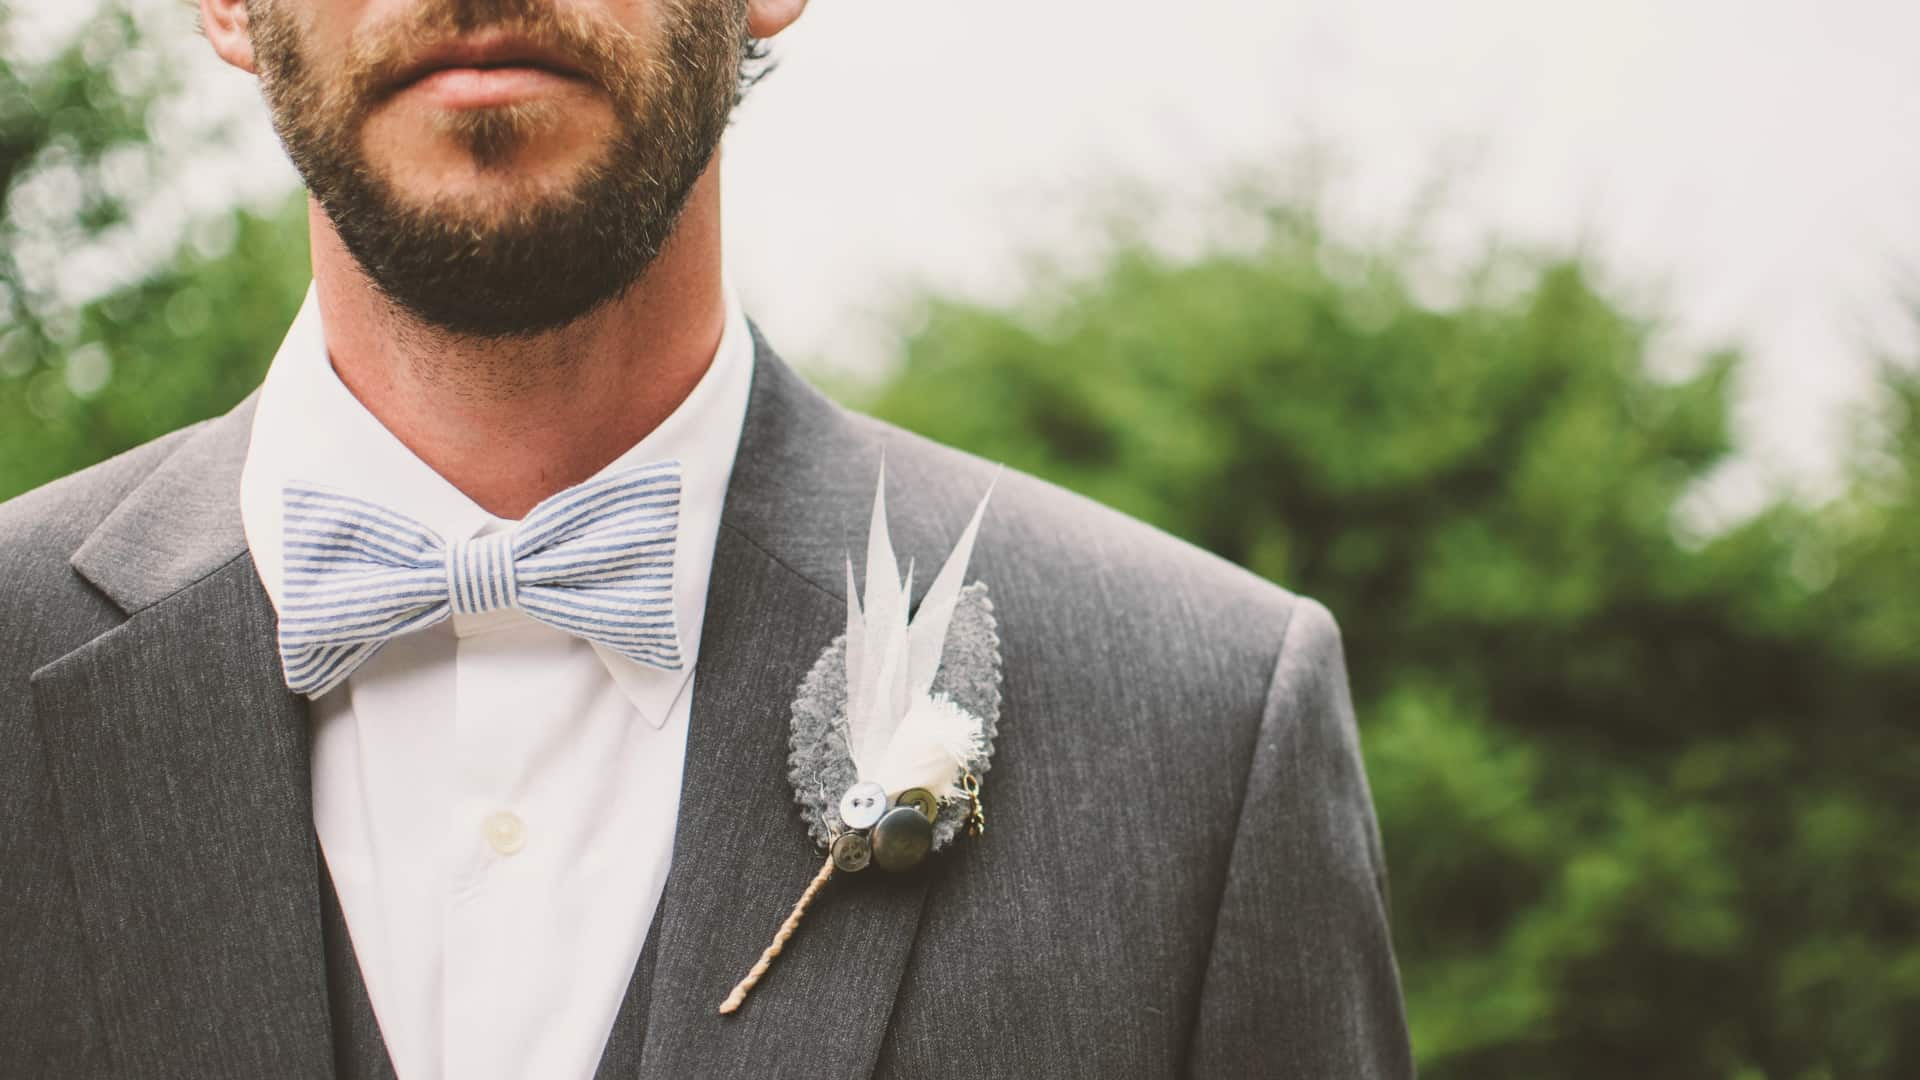 7 Decorations for the Groom's Lapel